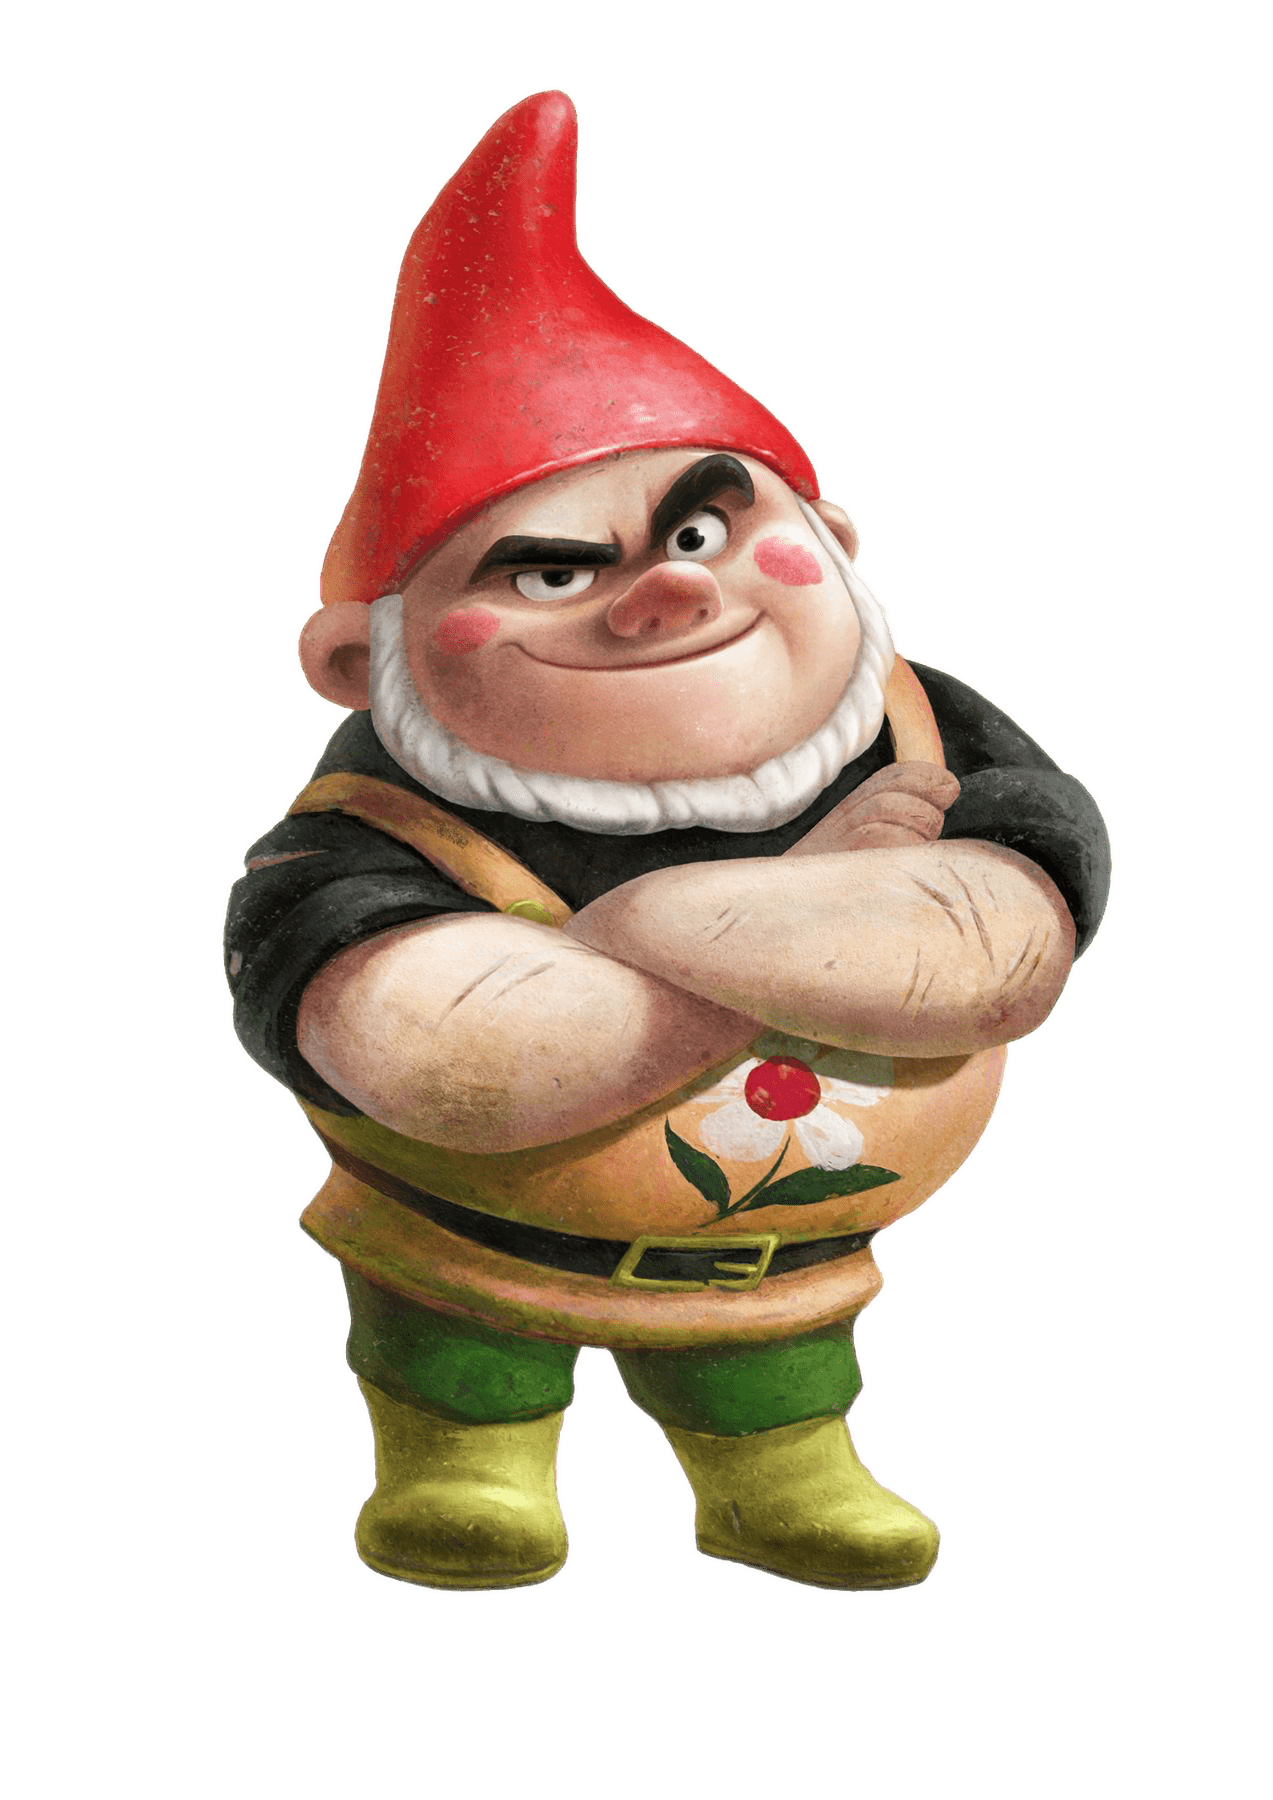 Tybalt transparent png stickpng. Gnome clipart lawn